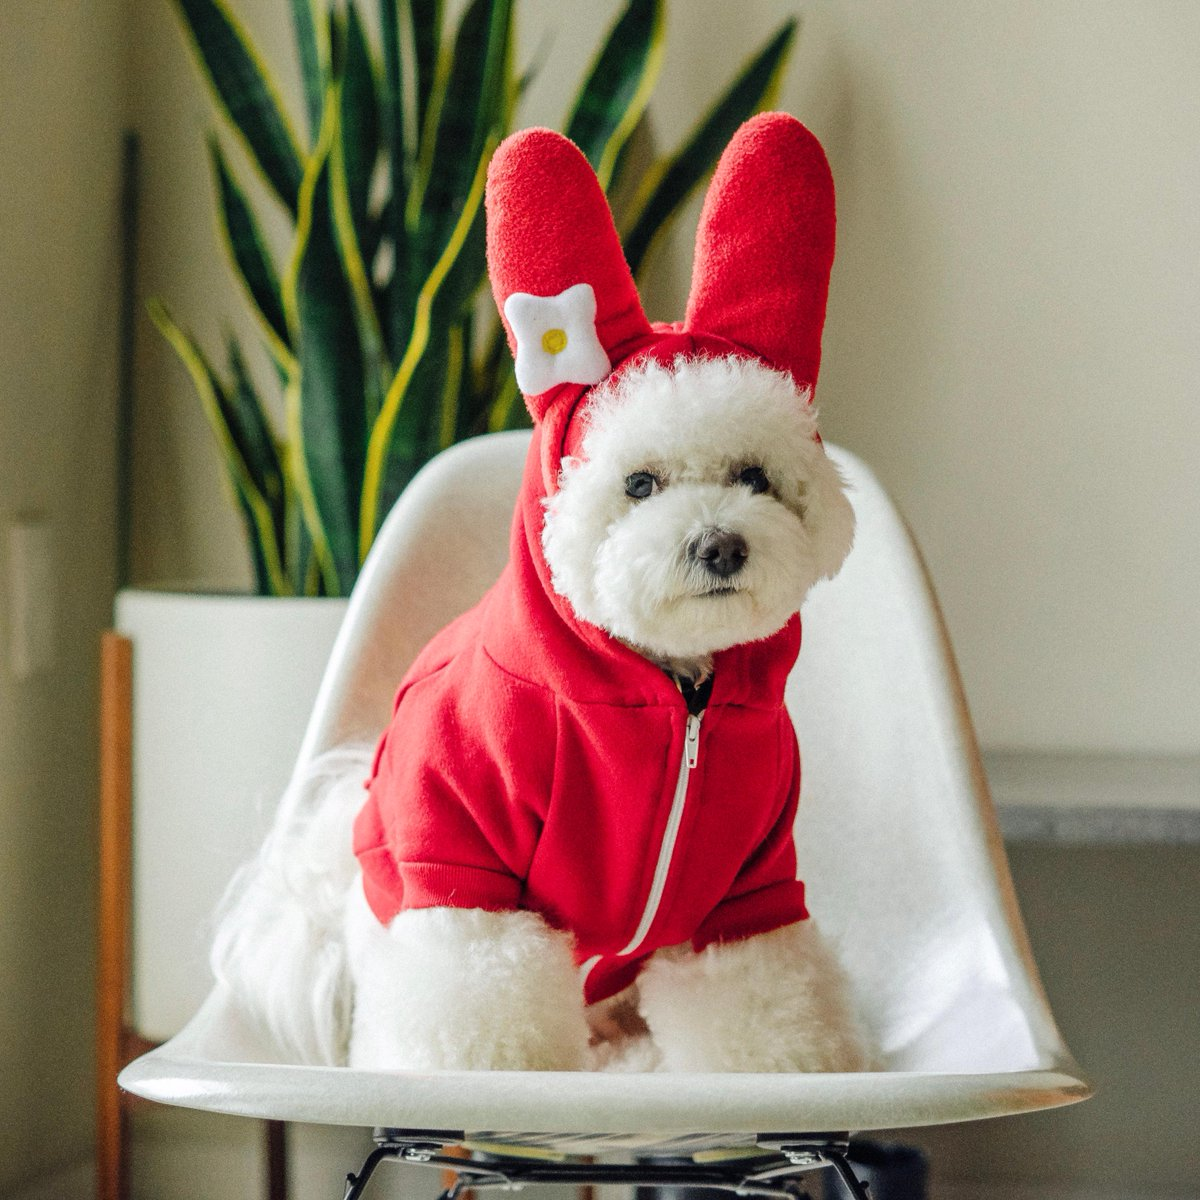 The sweetest way to celebrate #NationalDressUpYourPetDay #MyMelody   : bowiethebichon on Instagram.<br>http://pic.twitter.com/LUwrSqRXpS